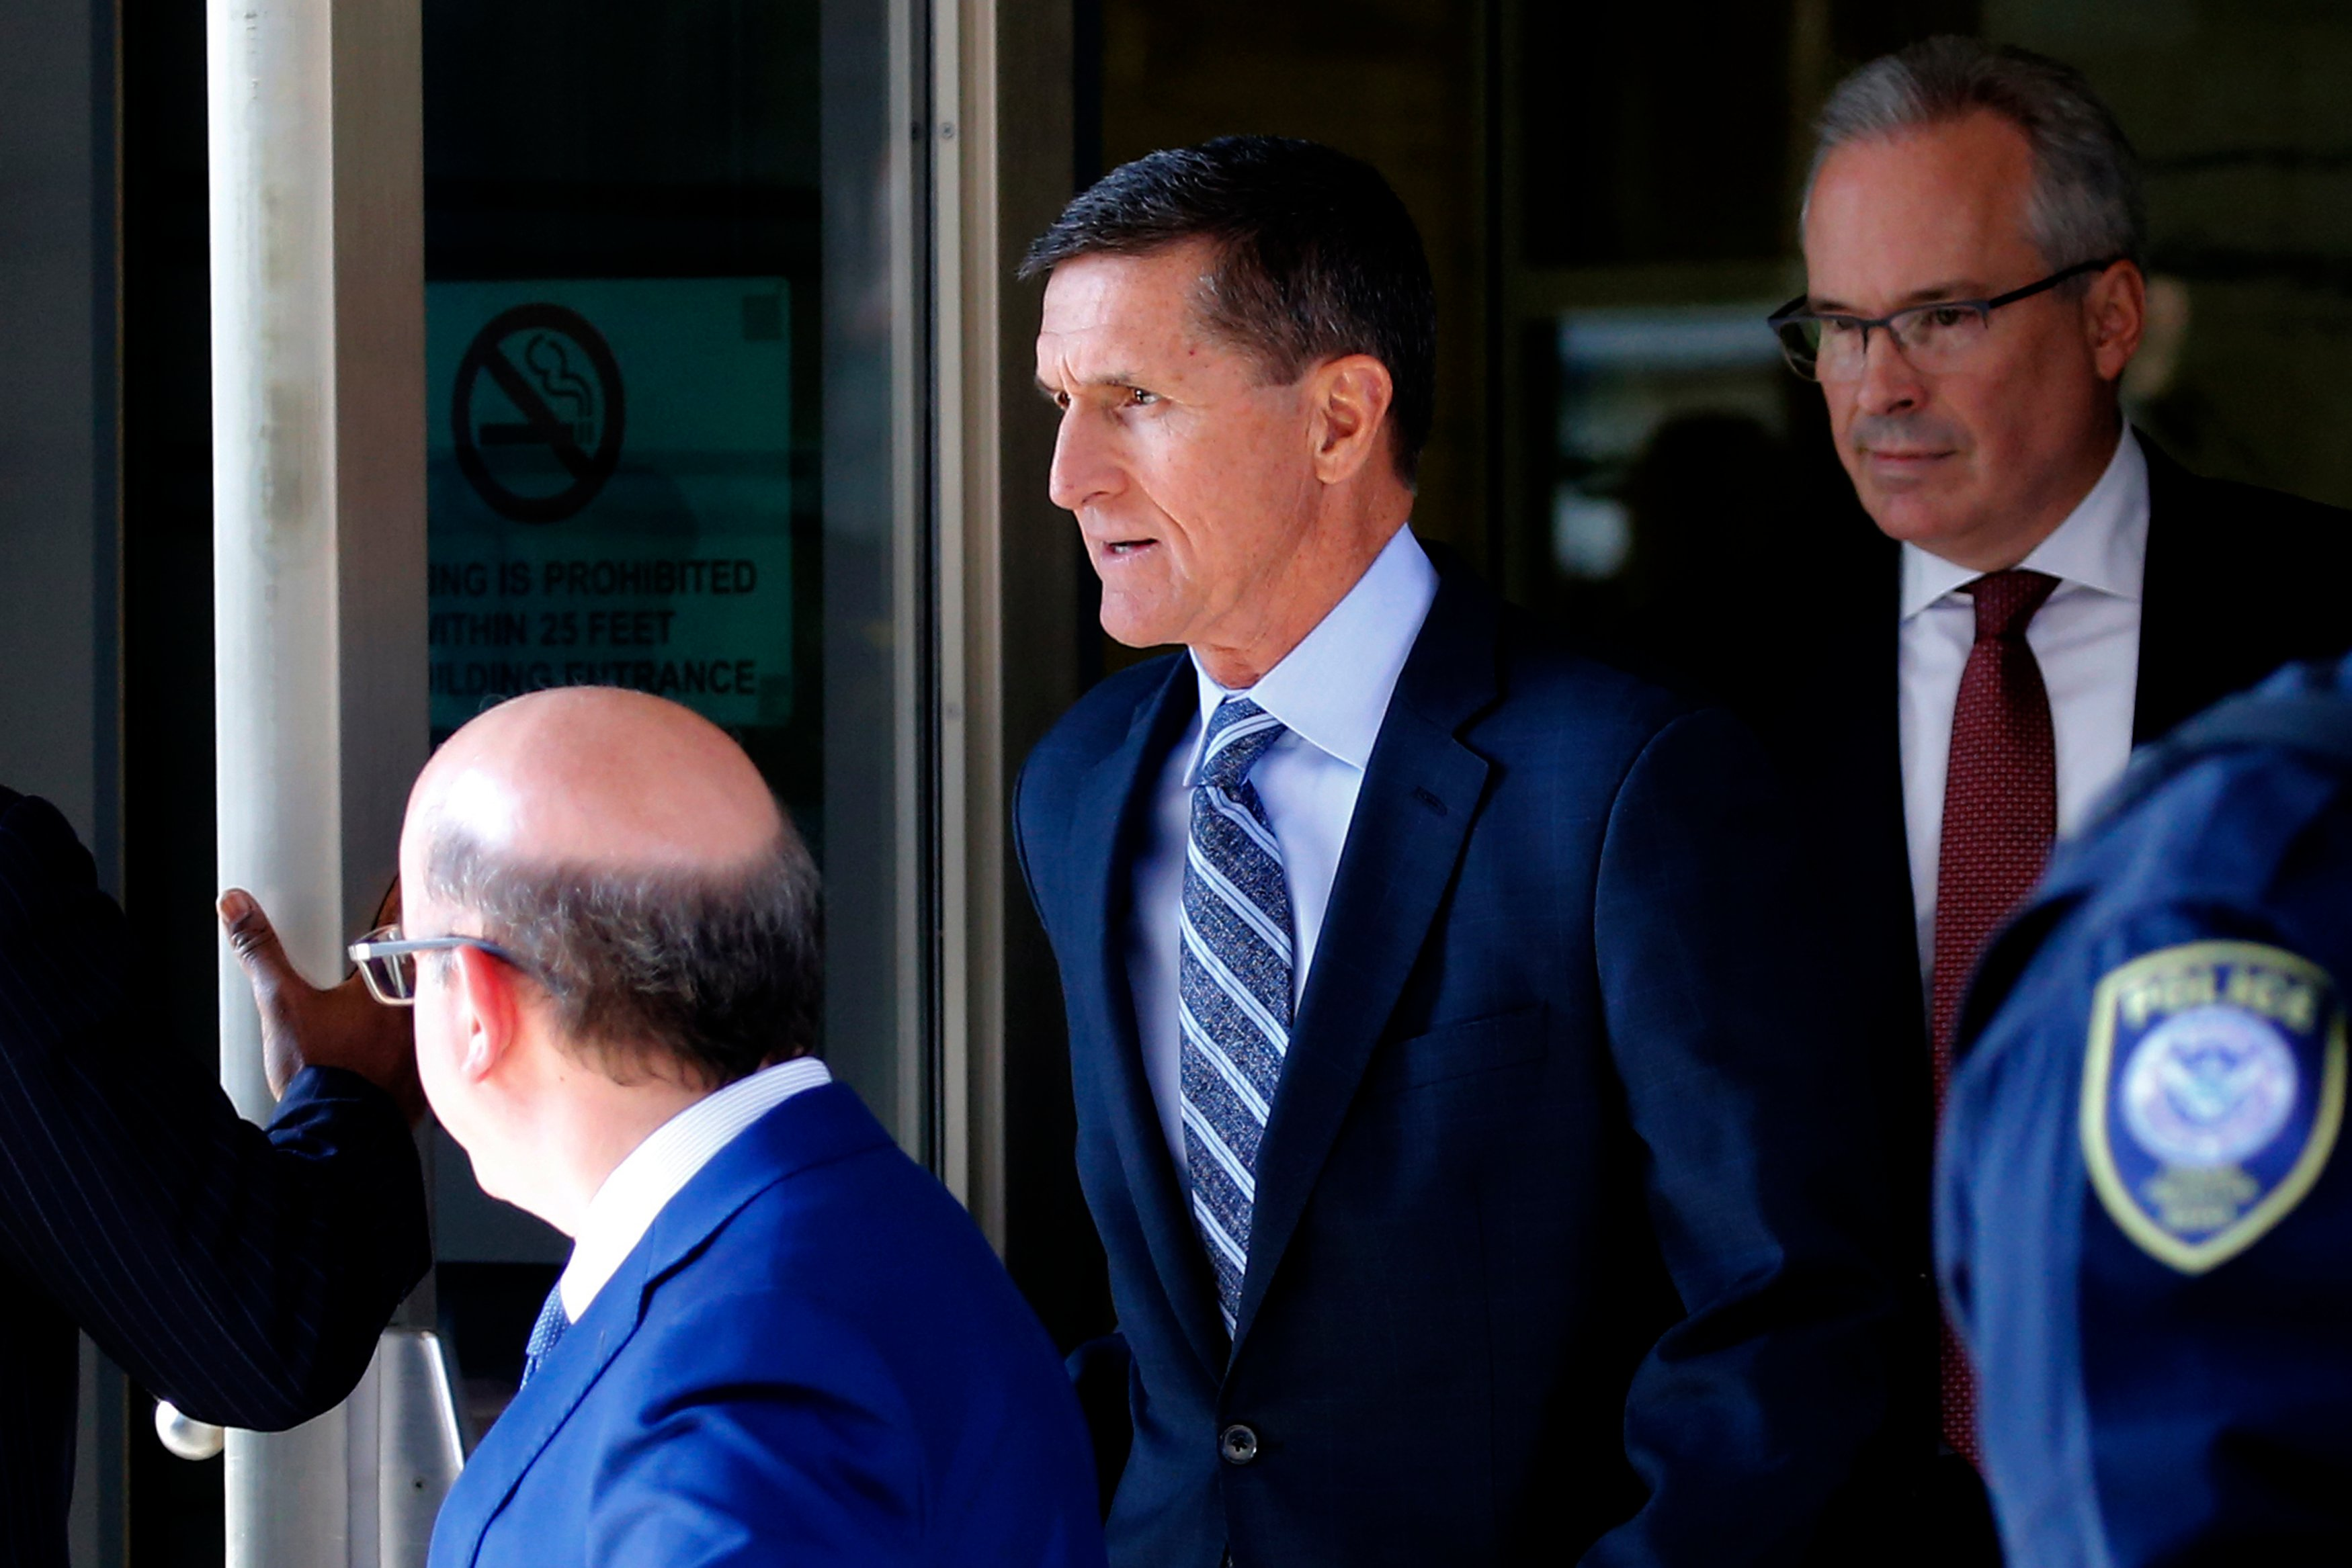 Michael Flynn knew better than to lie to the Federal Bureau of Investigation : prosecutors